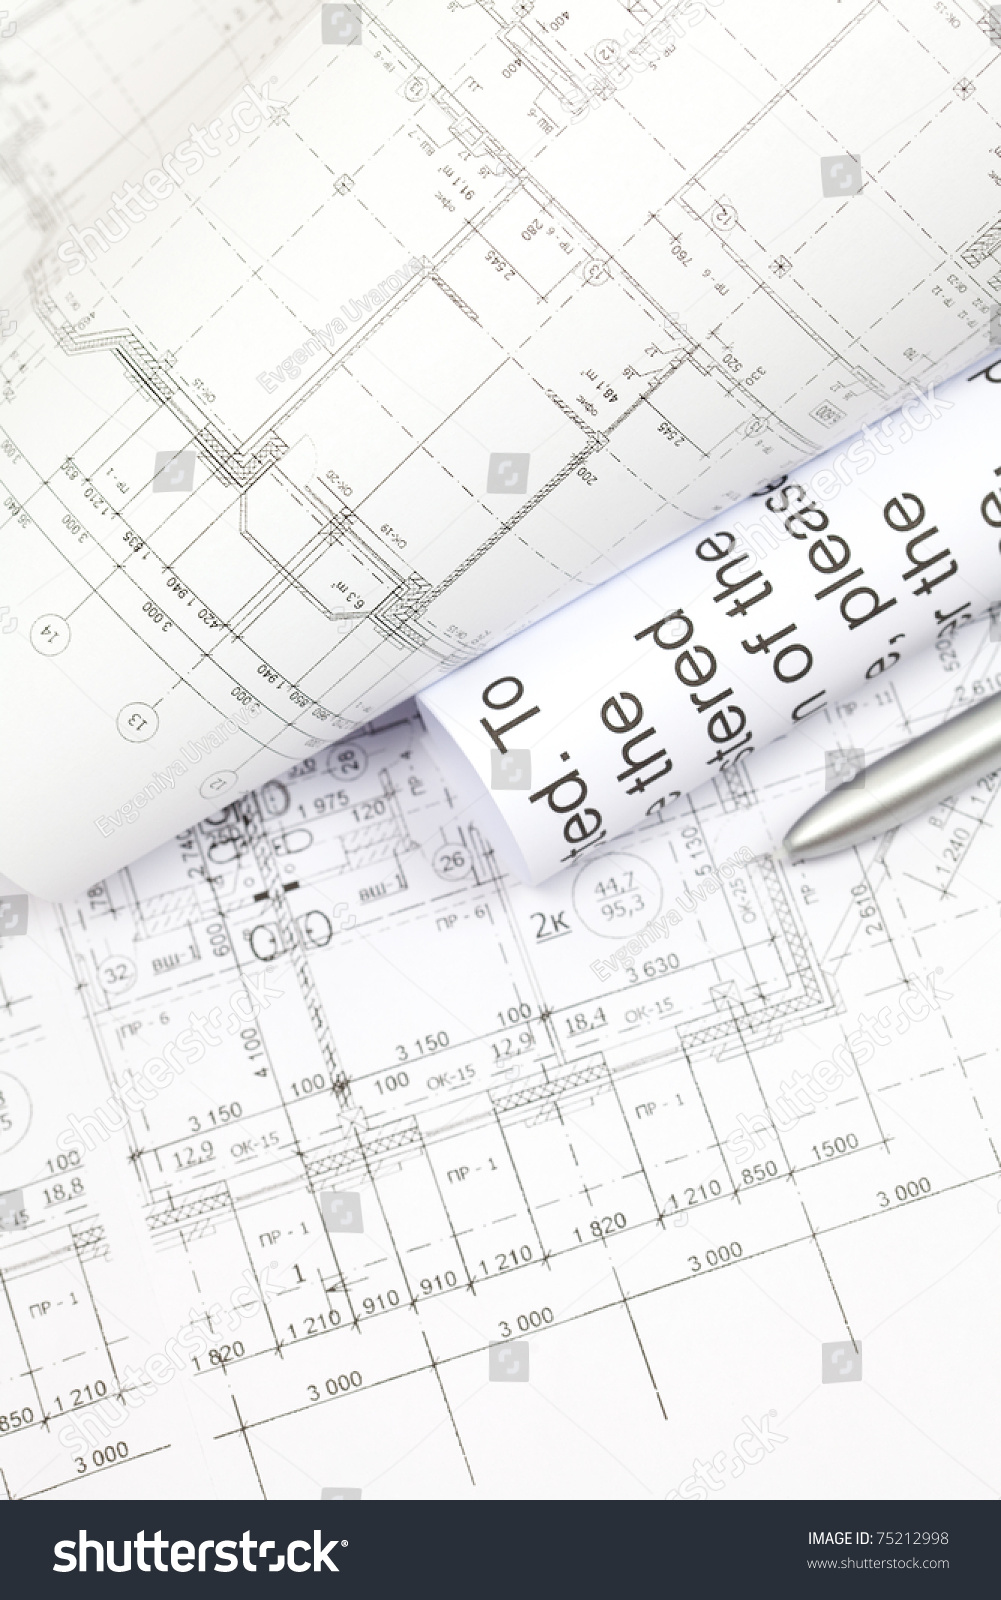 Engineering Diagram Blueprint Paper Drafting Project Sketch Architectural Drawings And Architecturalselective Focus Ez Canvas